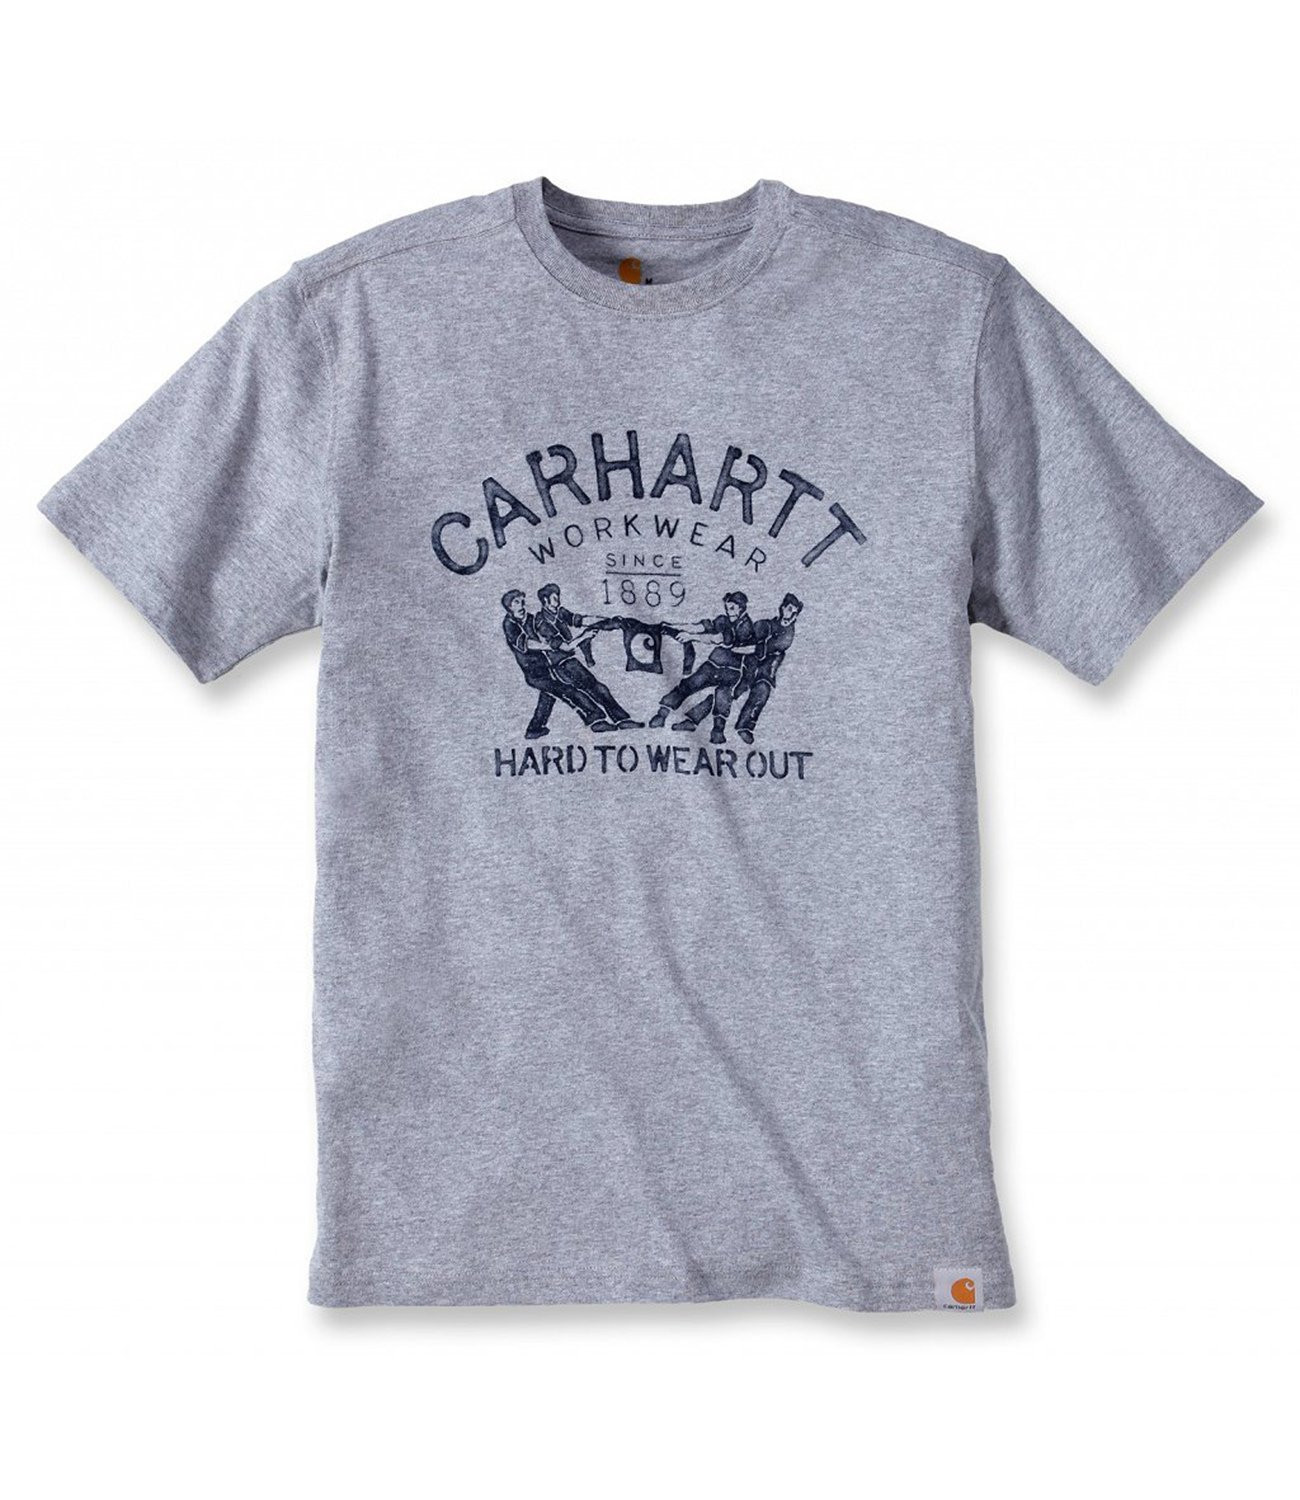 Футболка Carhartt Hard To Wear Out Graphic T-Shirt S/S - 102097 (Heather Grey, S)